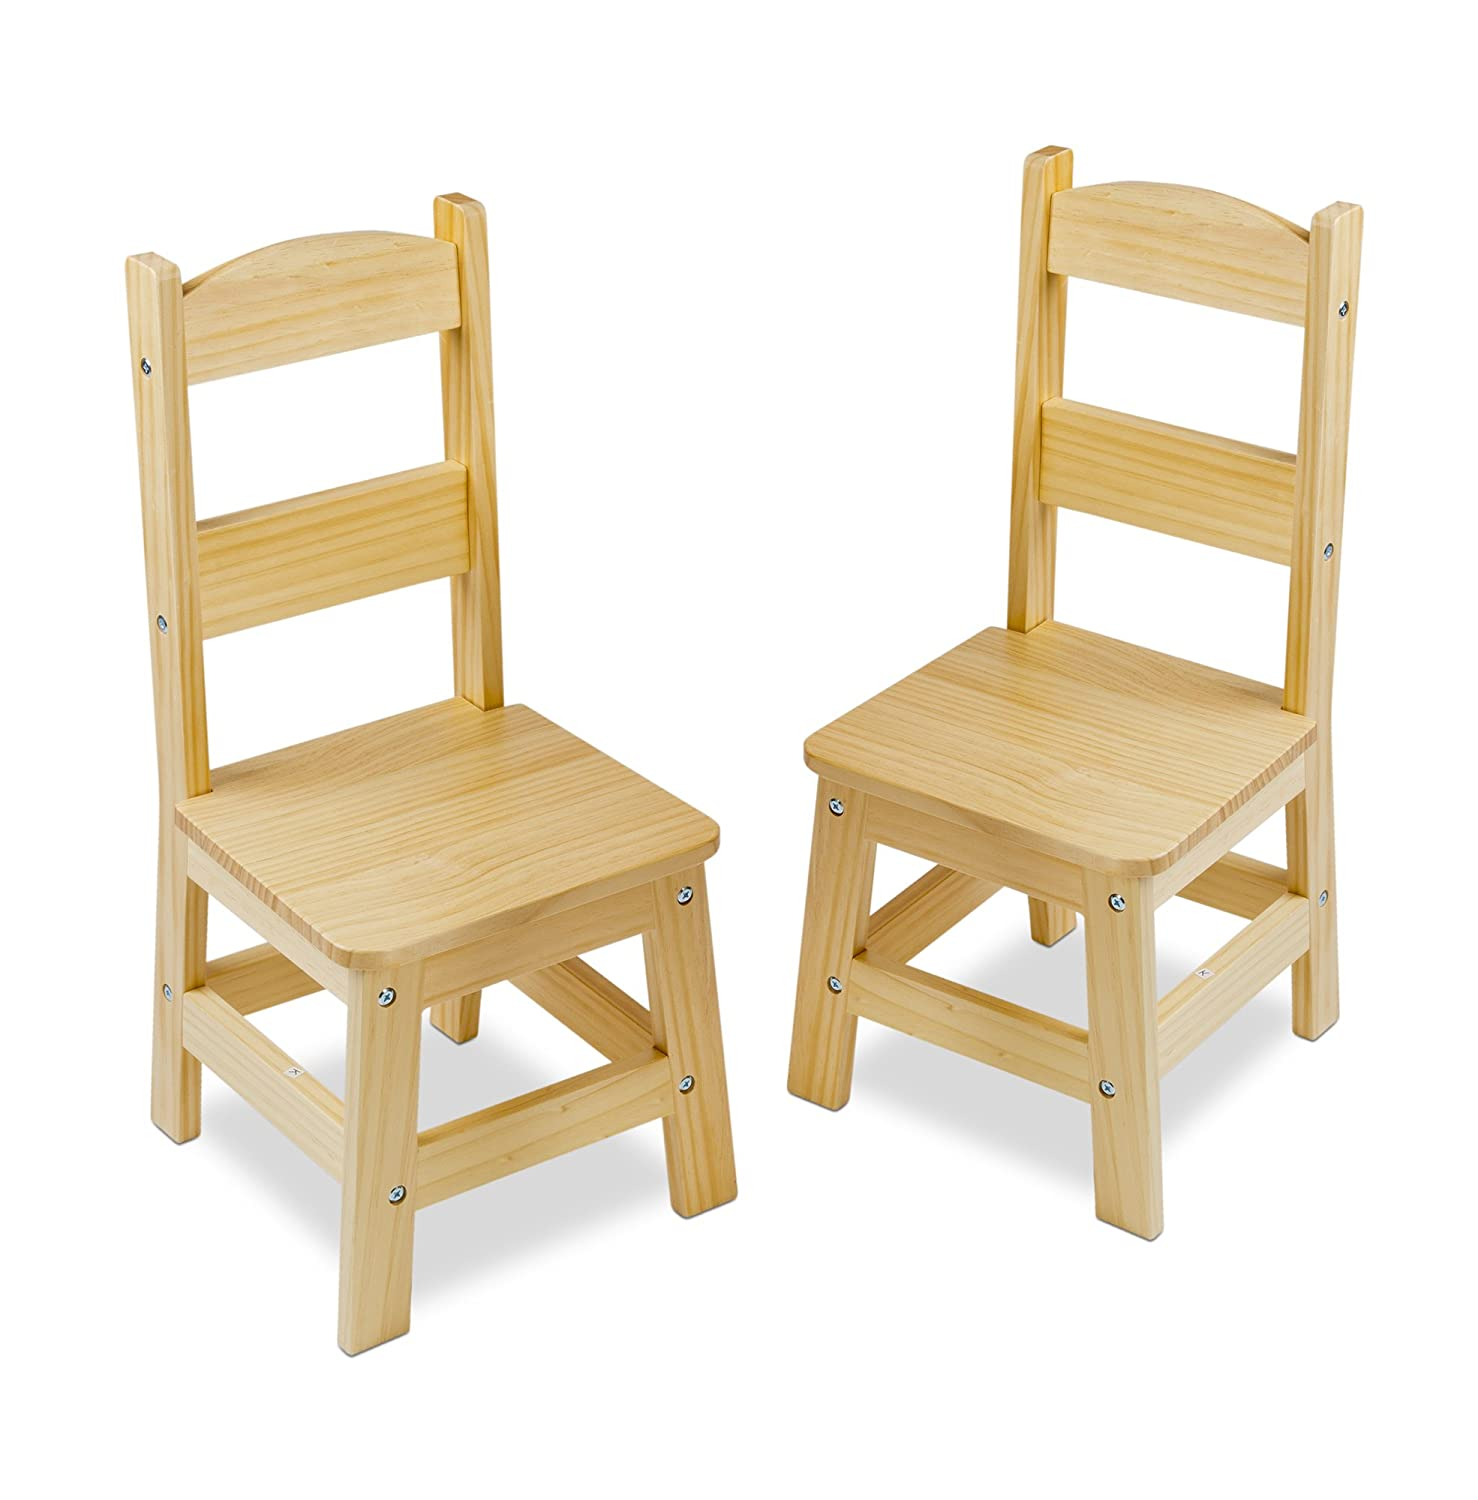 "Melissa & Doug Solid Wood Chairs, Chairs for Kids, Light-Finish Furniture for a Playroom, Durable Construction, Set of 2, 28"" H x 15.2"" W x 4"" L"